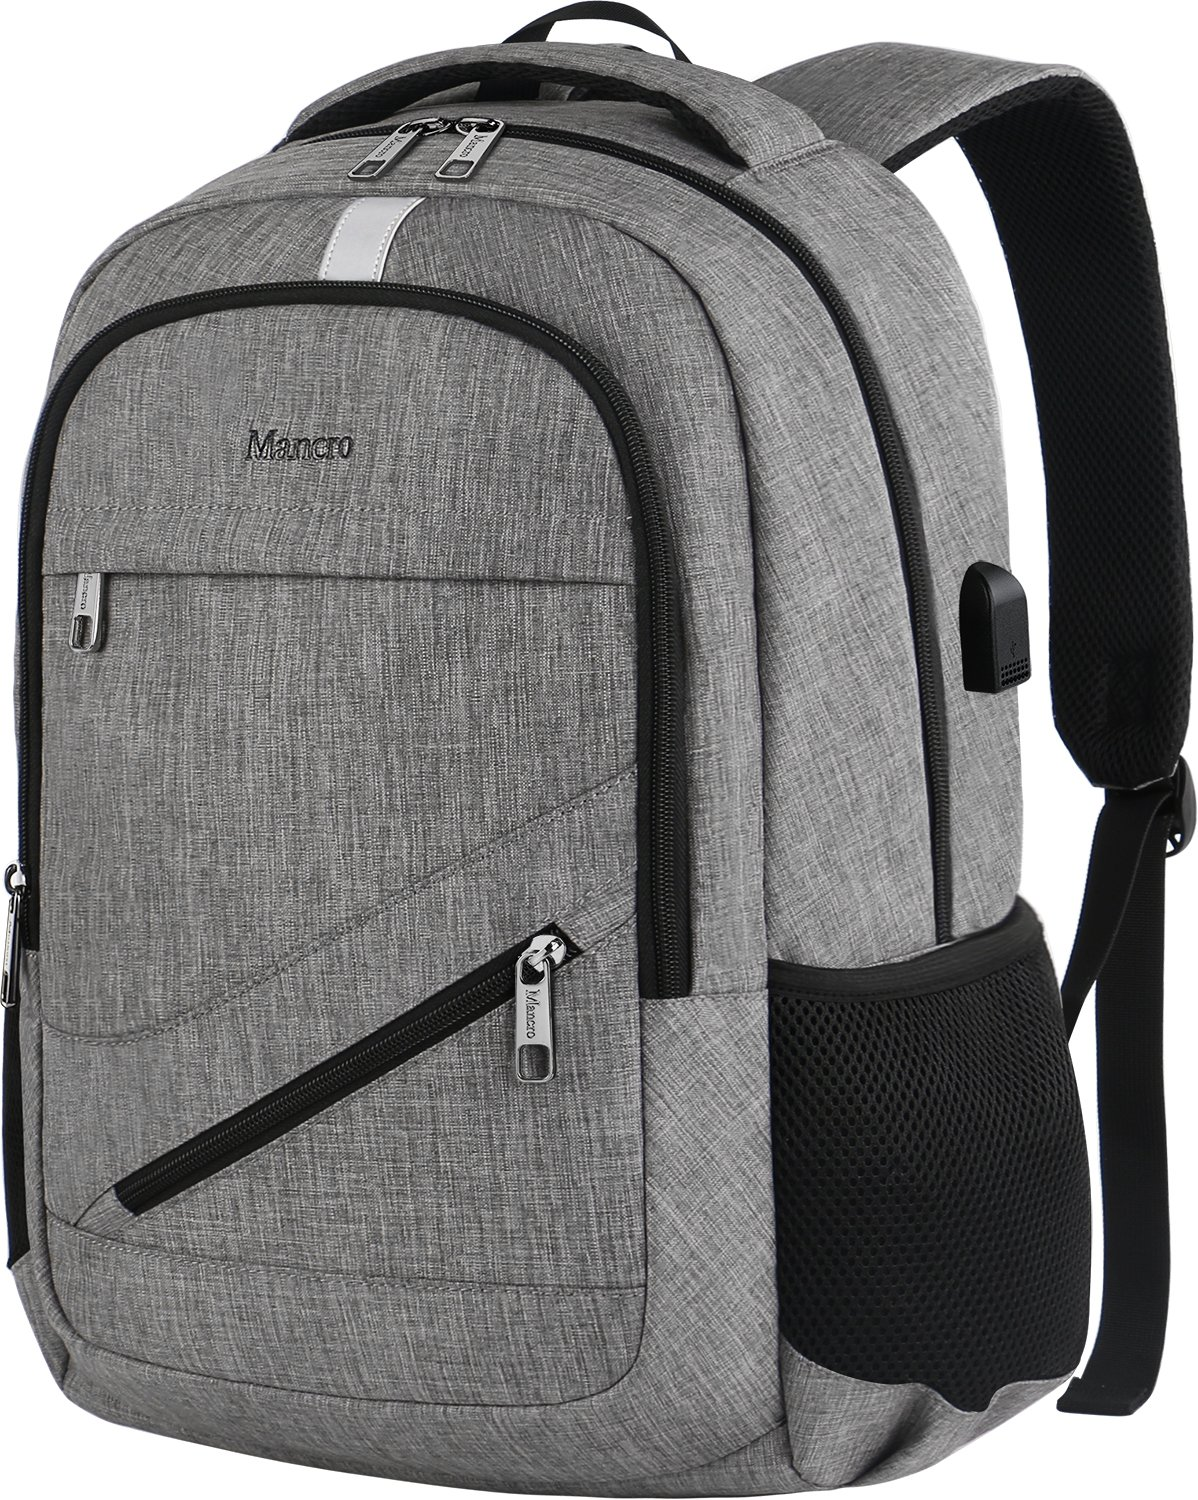 Travel Laptop Backpack, Mancro Anti Theft Durable College School Bag with USB Charger Port Fit Up to 17'' Laptop, Slim Business Water Resistent Lightweight Daypack for MacBook Computer Men Women(Grey)